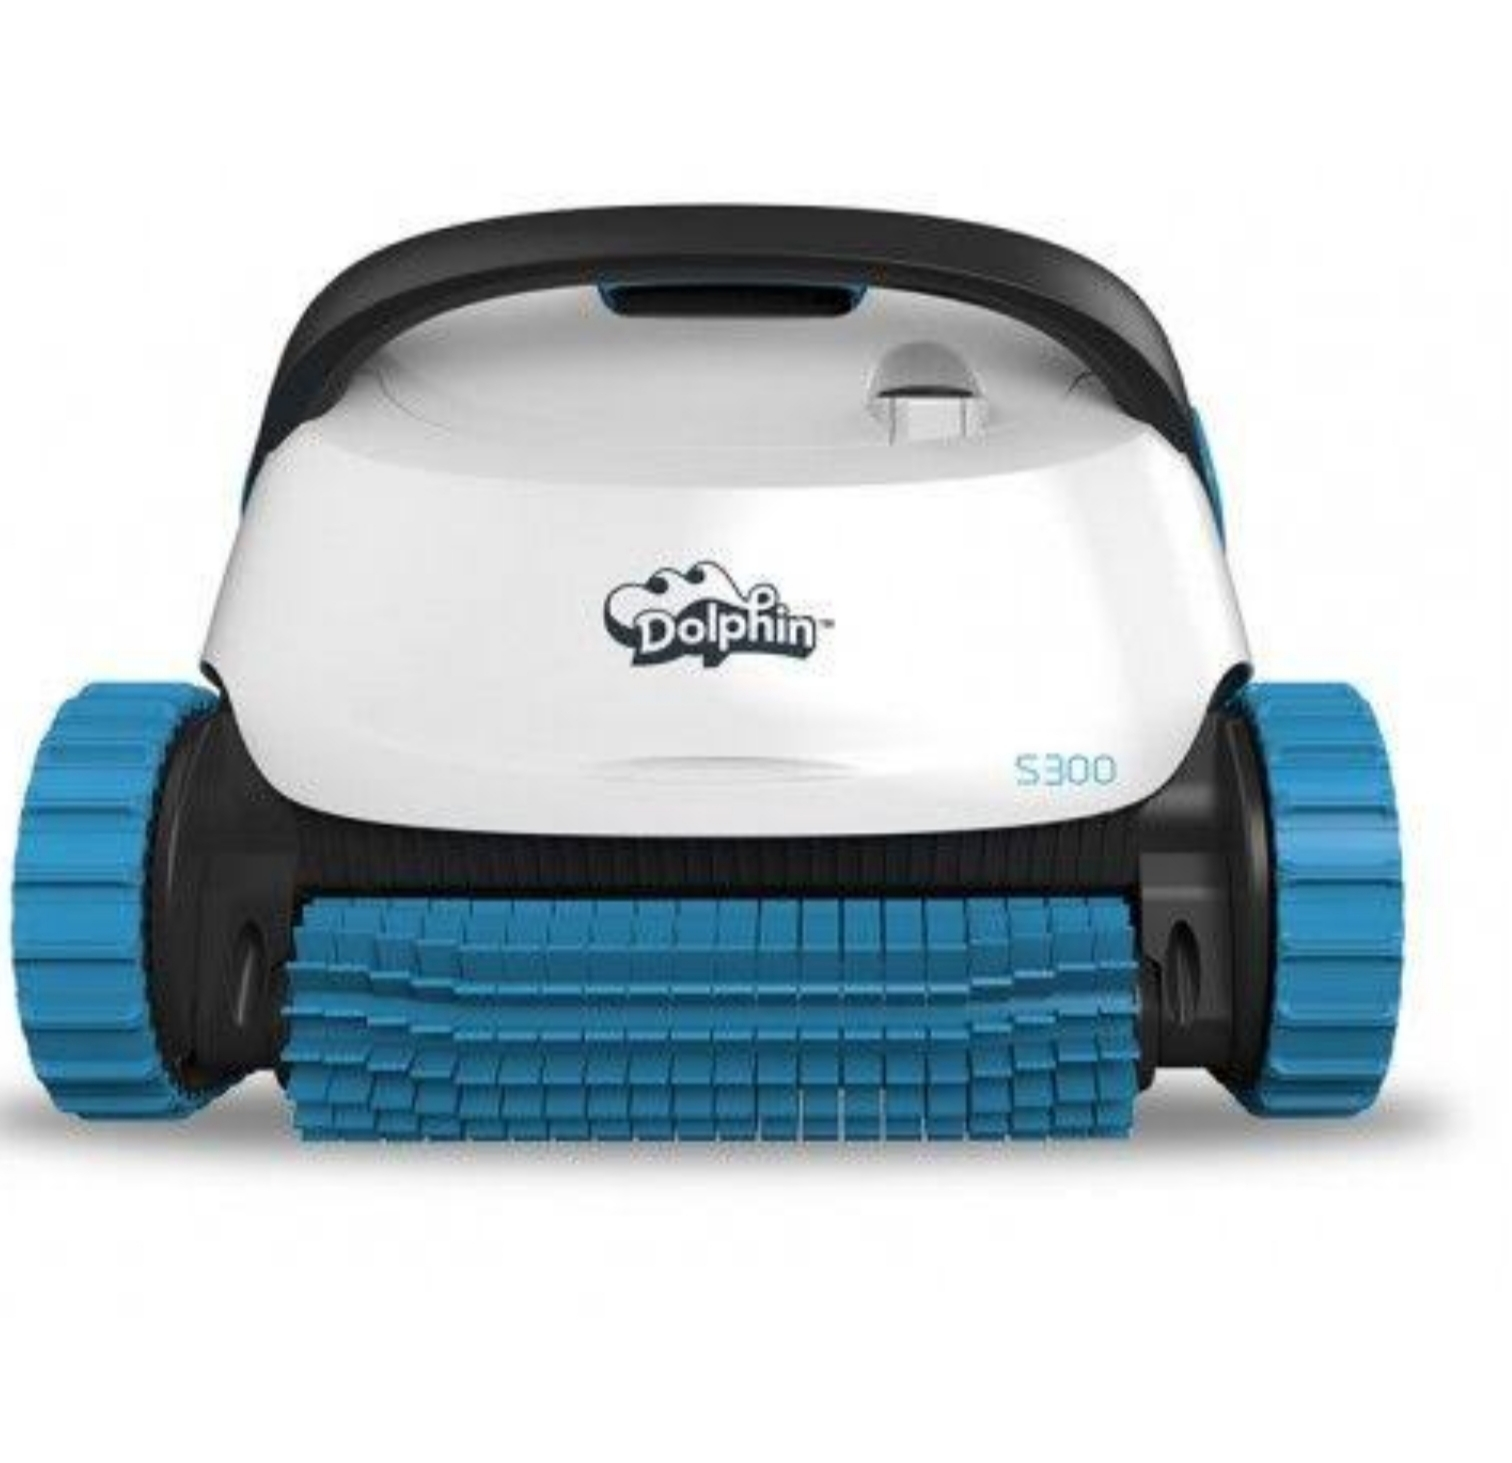 dolphin-robotic-pool-cleaner-s300